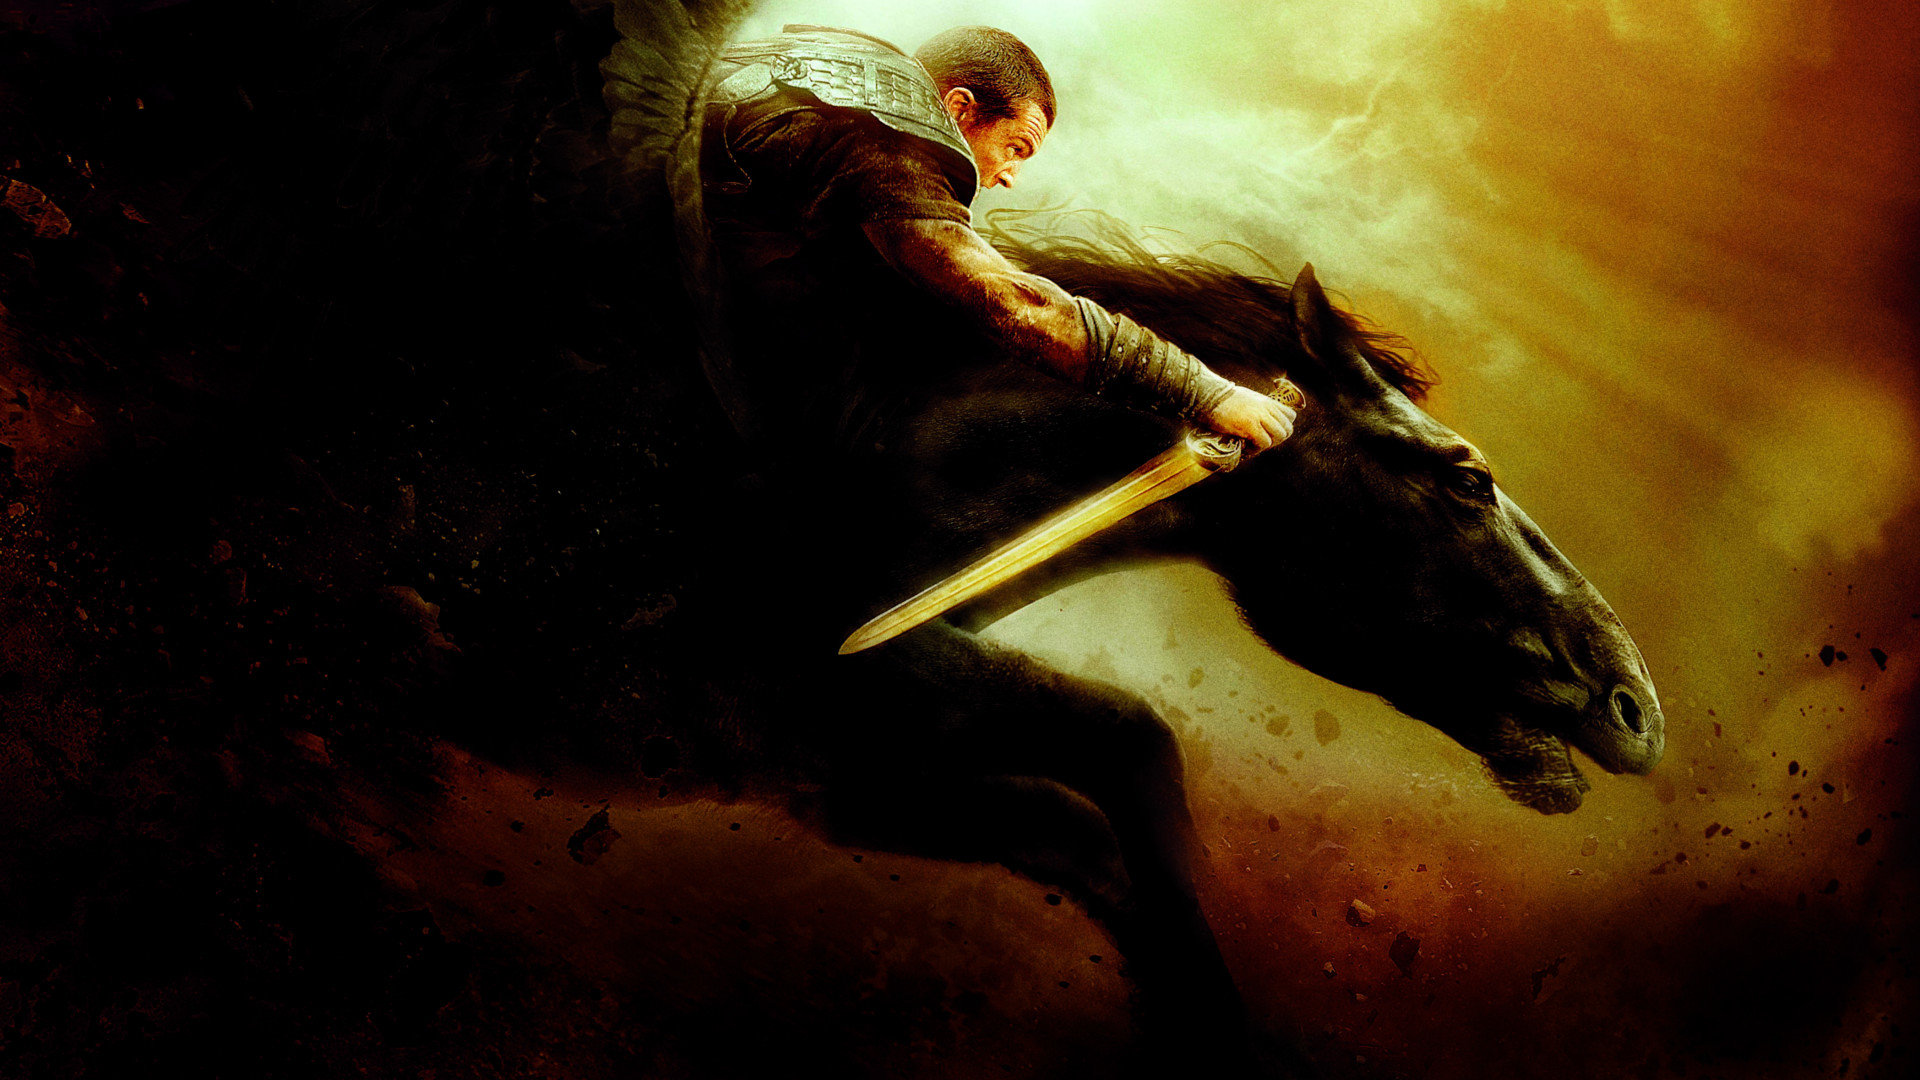 Best Clash Of The Titans 2010 Wallpaper Id 128654 For High